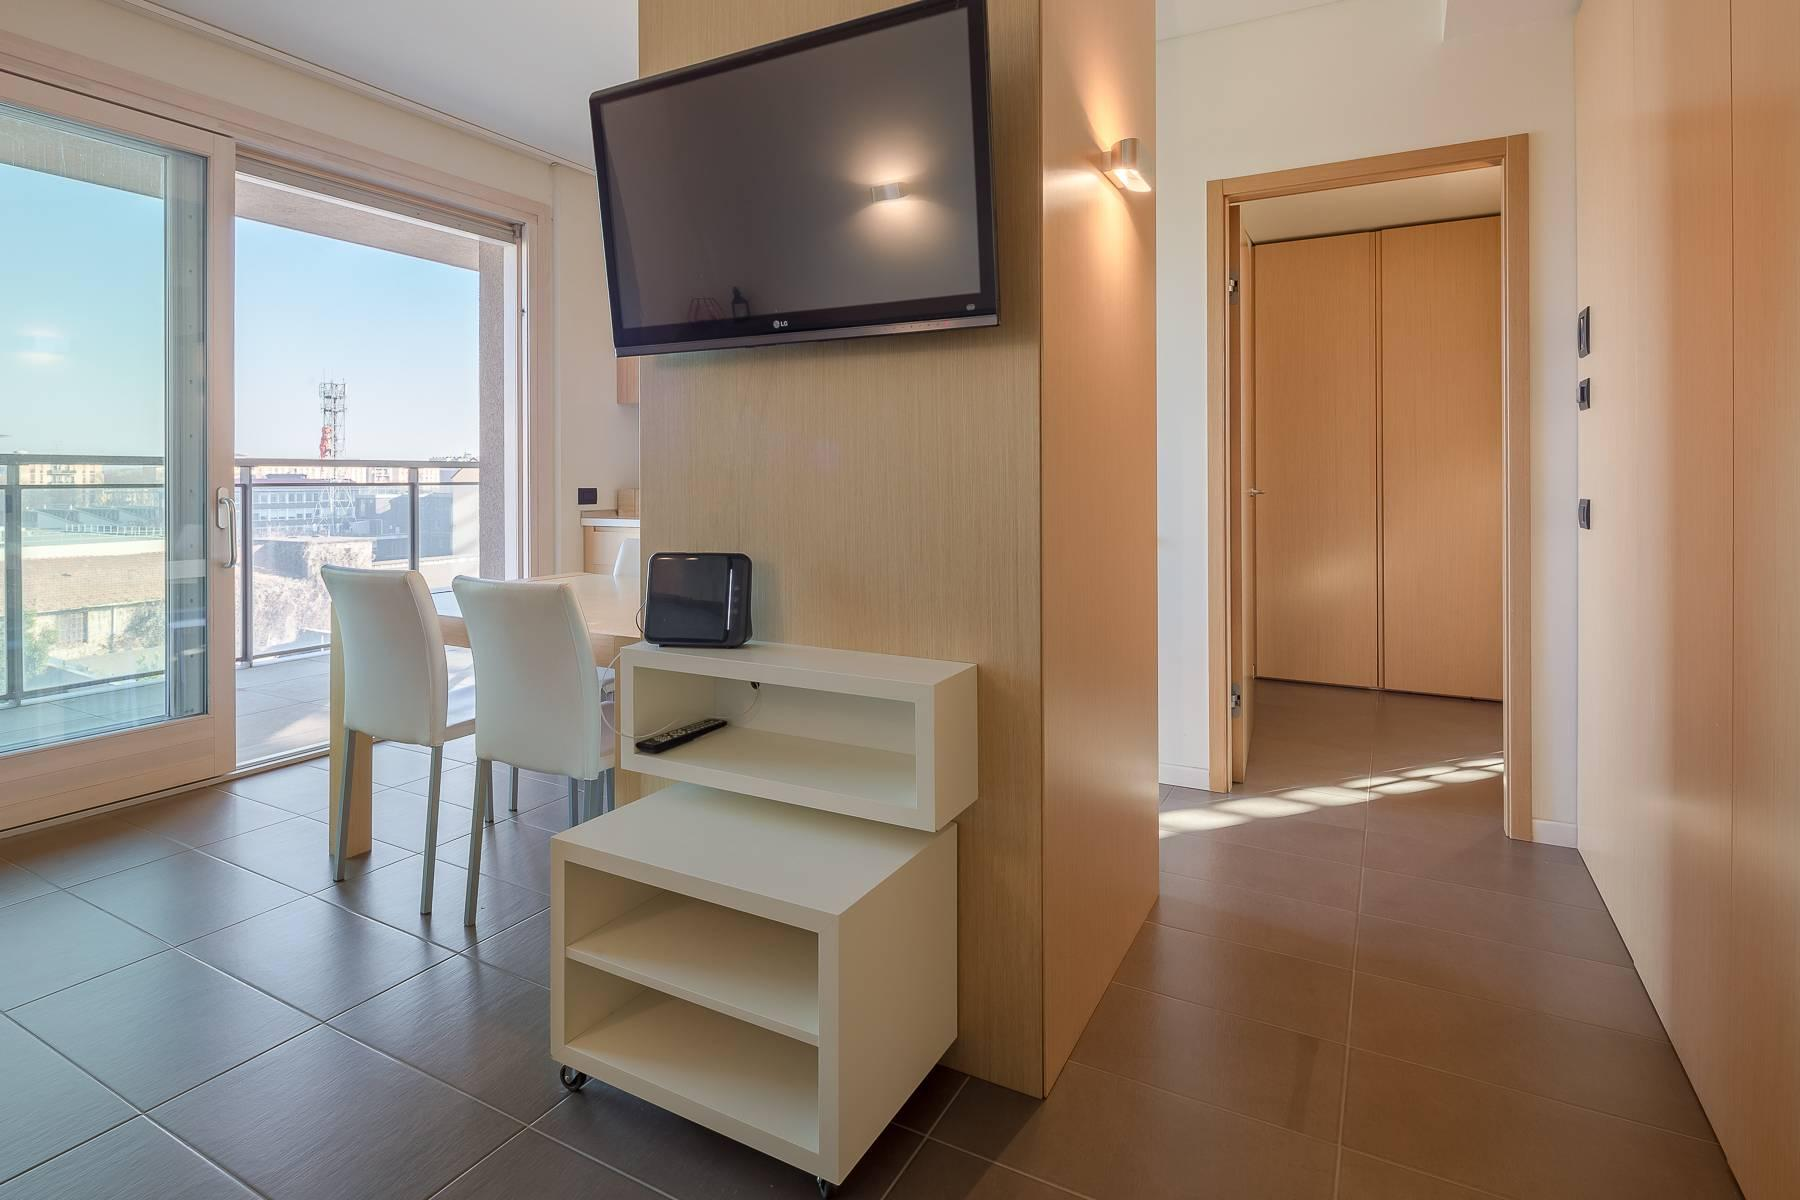 New two-room apartment with terrace in Giax Tower - 2